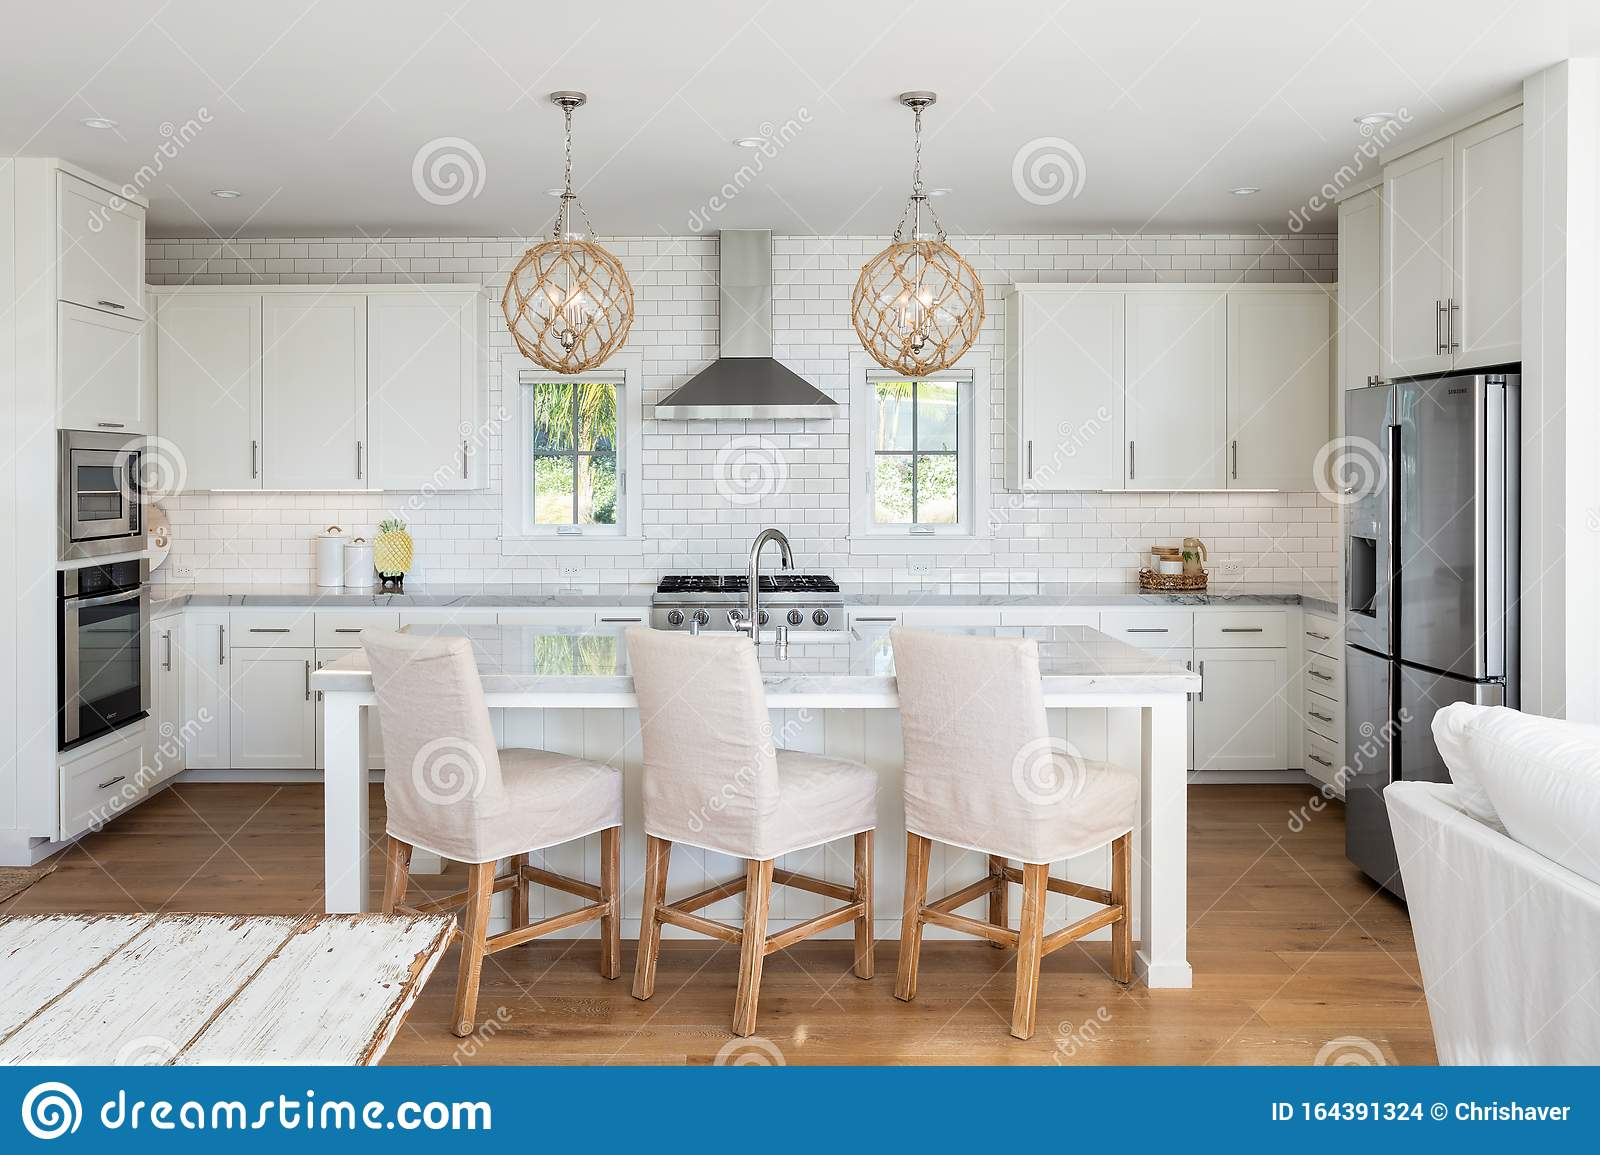 Beach Residential Kitchen Design With Wood Floors Editorial Stock Image Image Of High Beachy 164391324